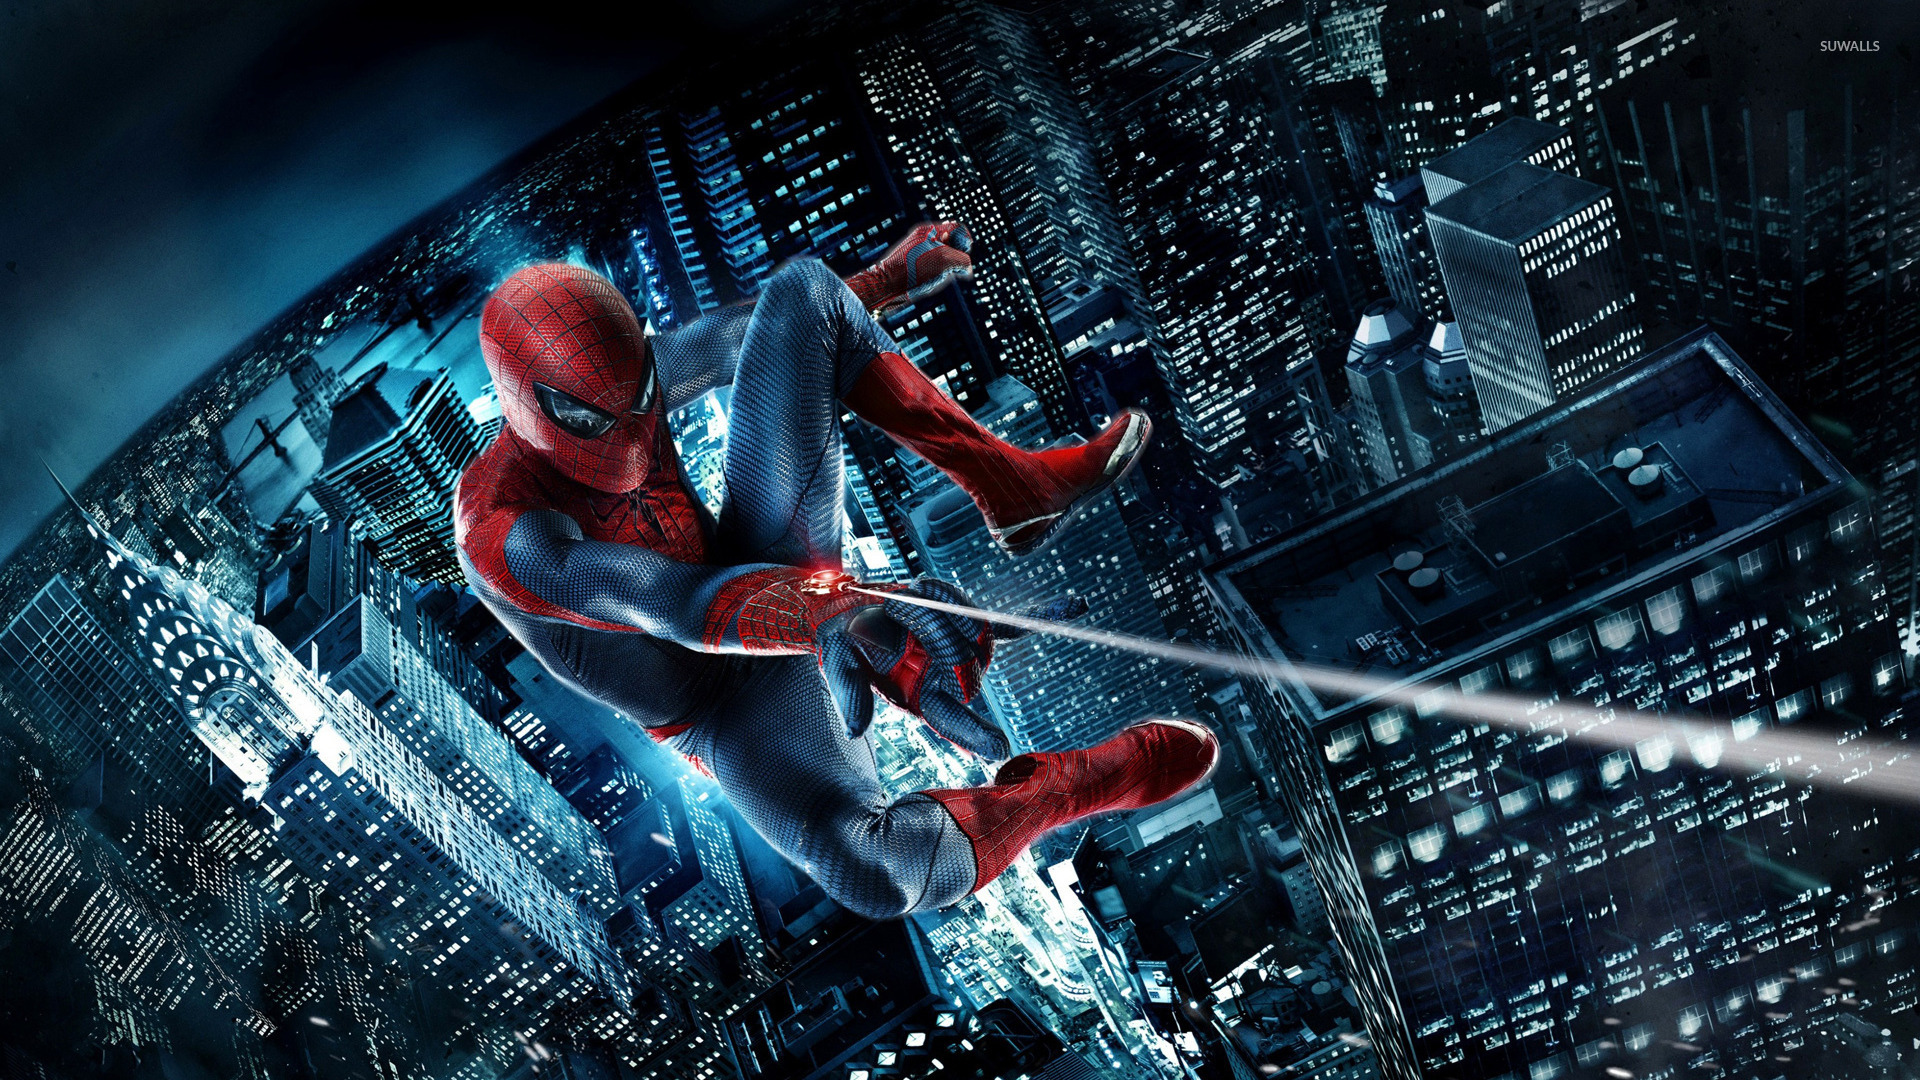 Spider Man 3 Wallpaper Movie Wallpapers 45427